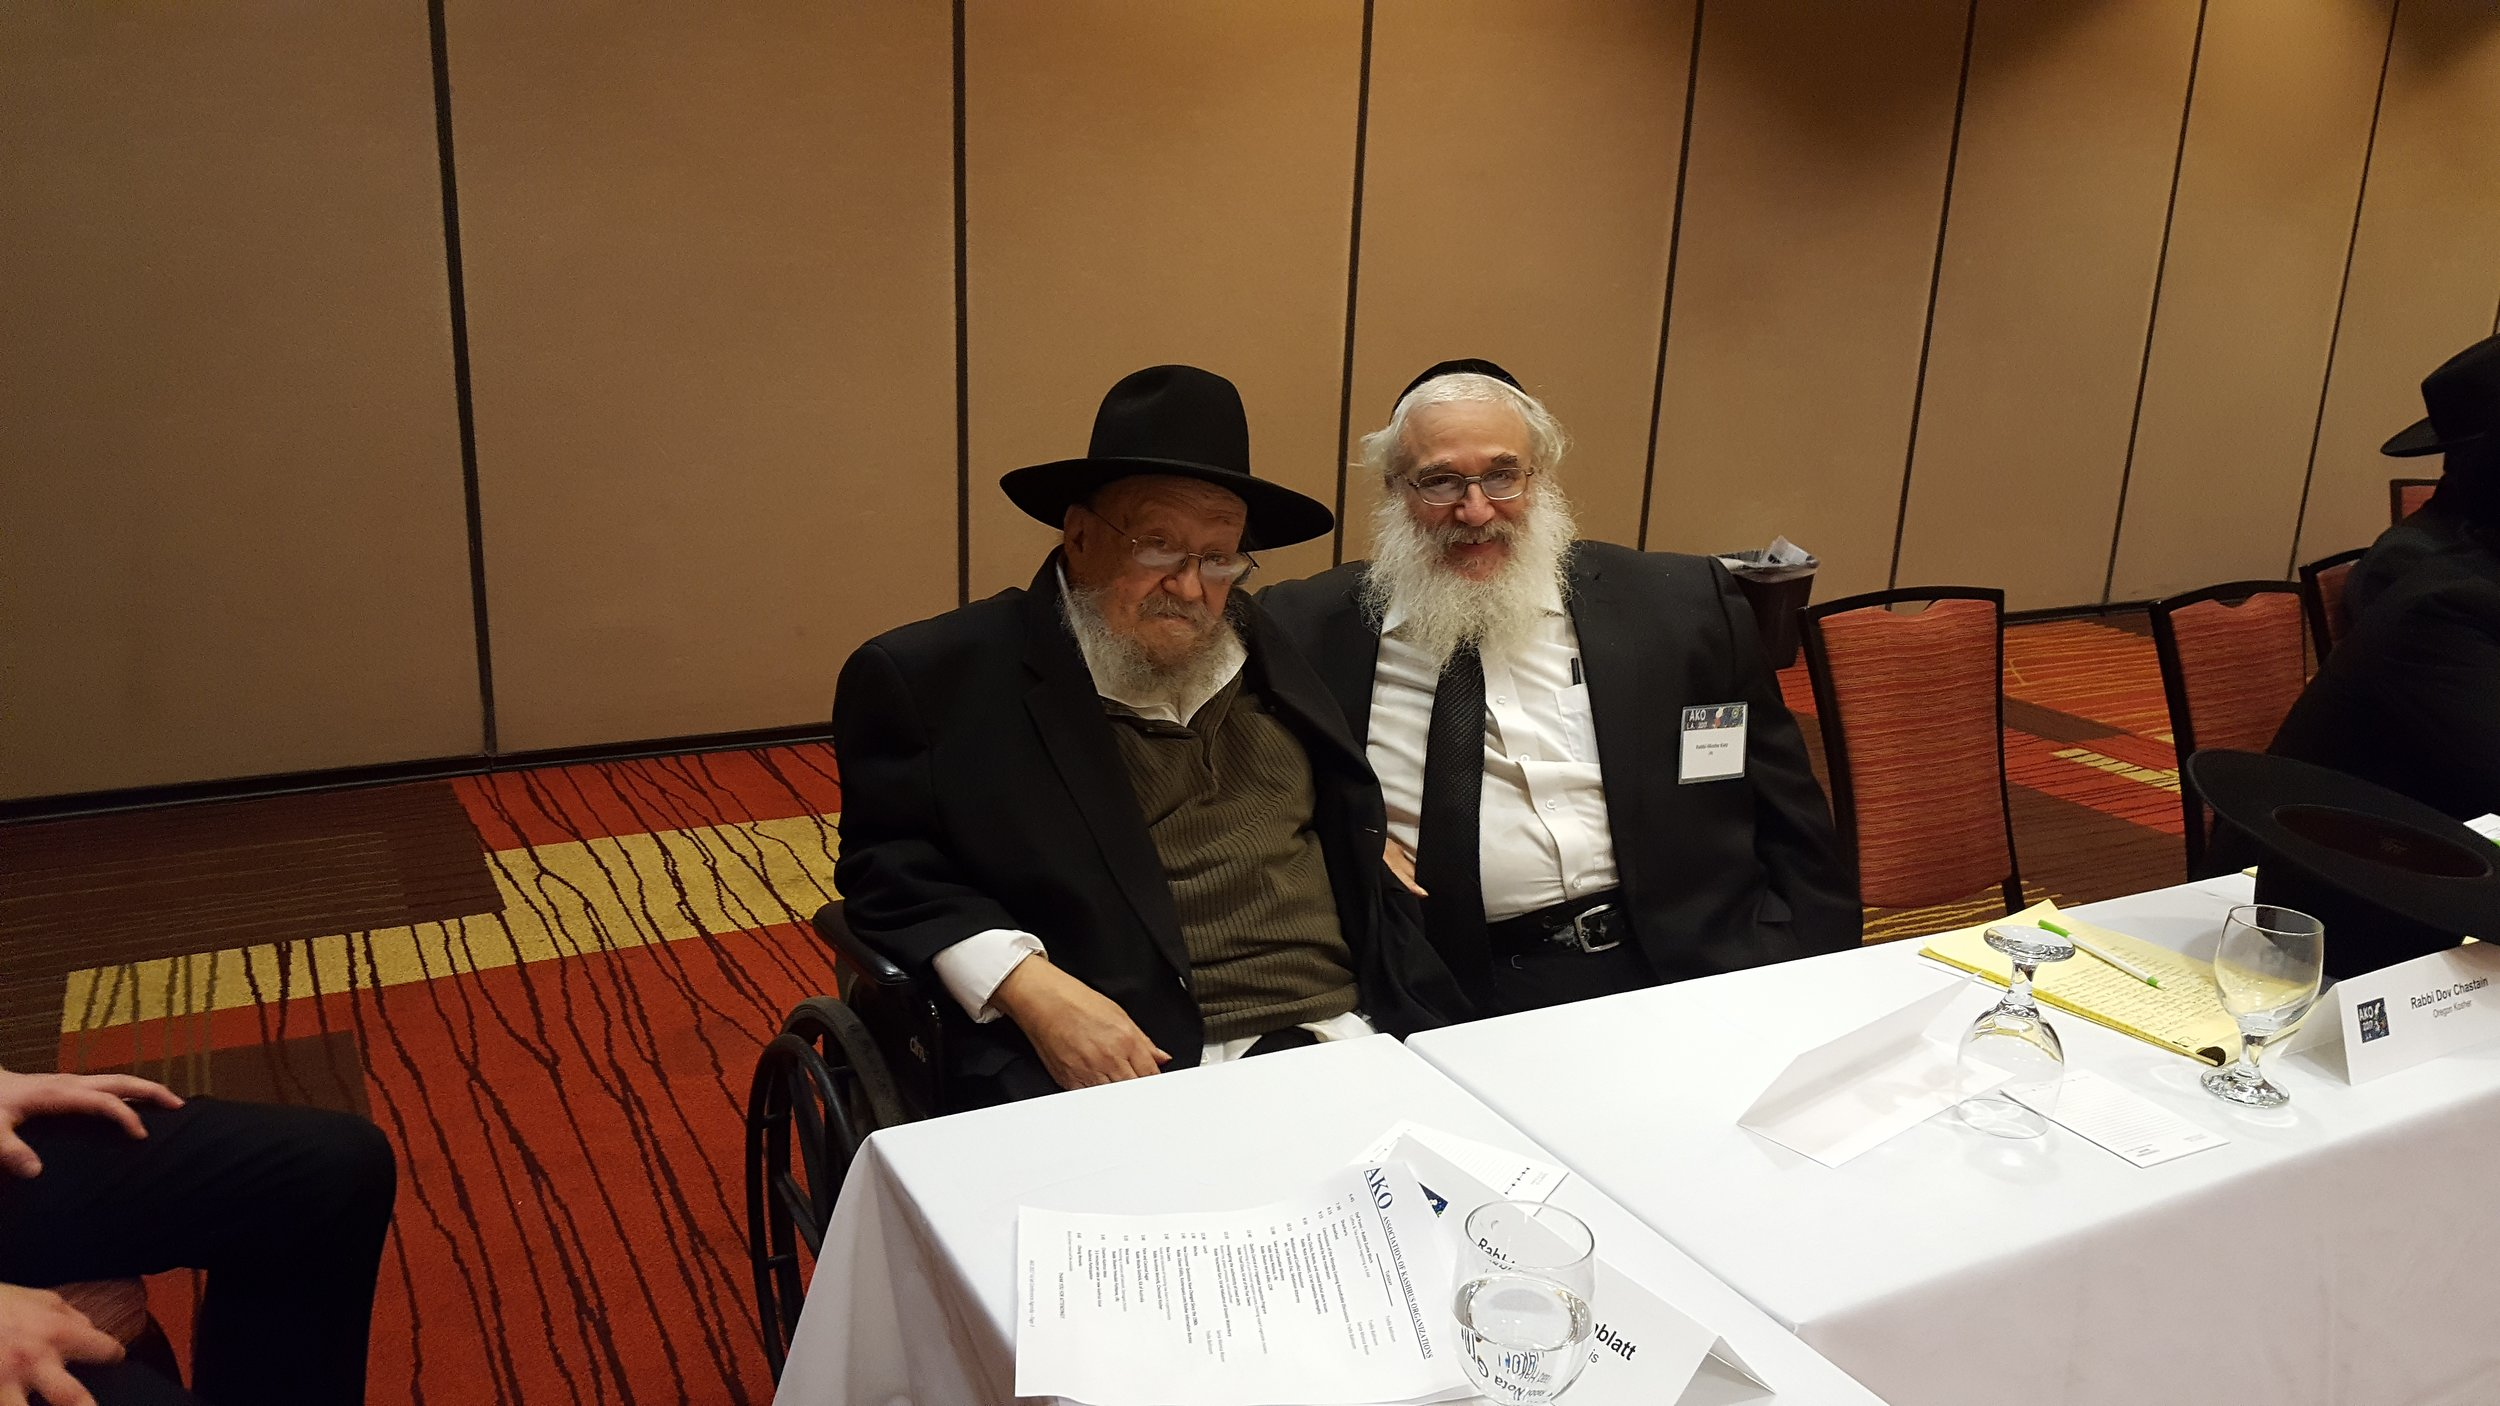 Reb Chaim Goldzweig and Rabbi Moshe Katz at the AKO Convention Oxnard CA February 2017.jpg